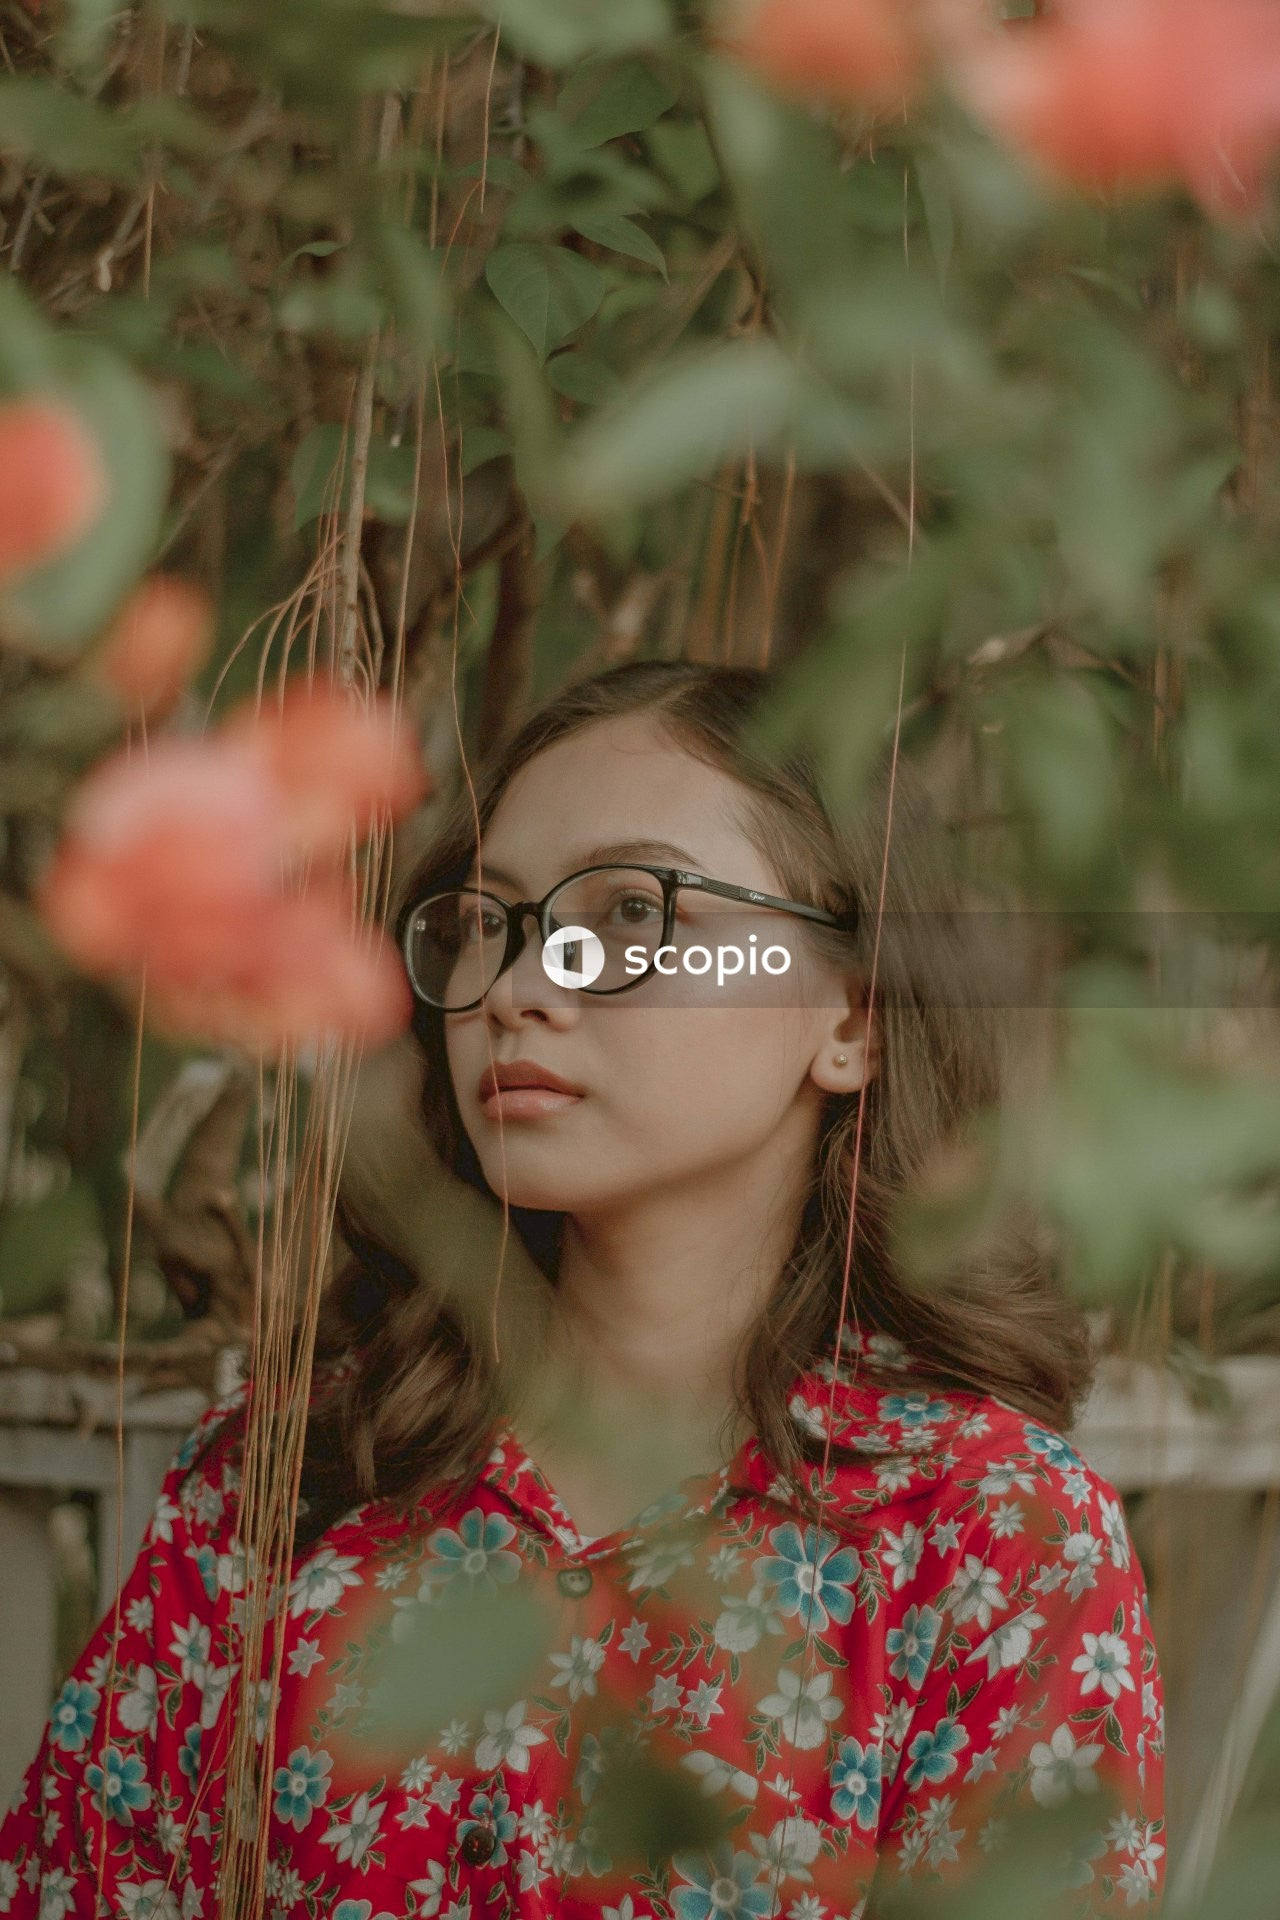 Woman in red and white floral shirt wearing black framed eyeglasses